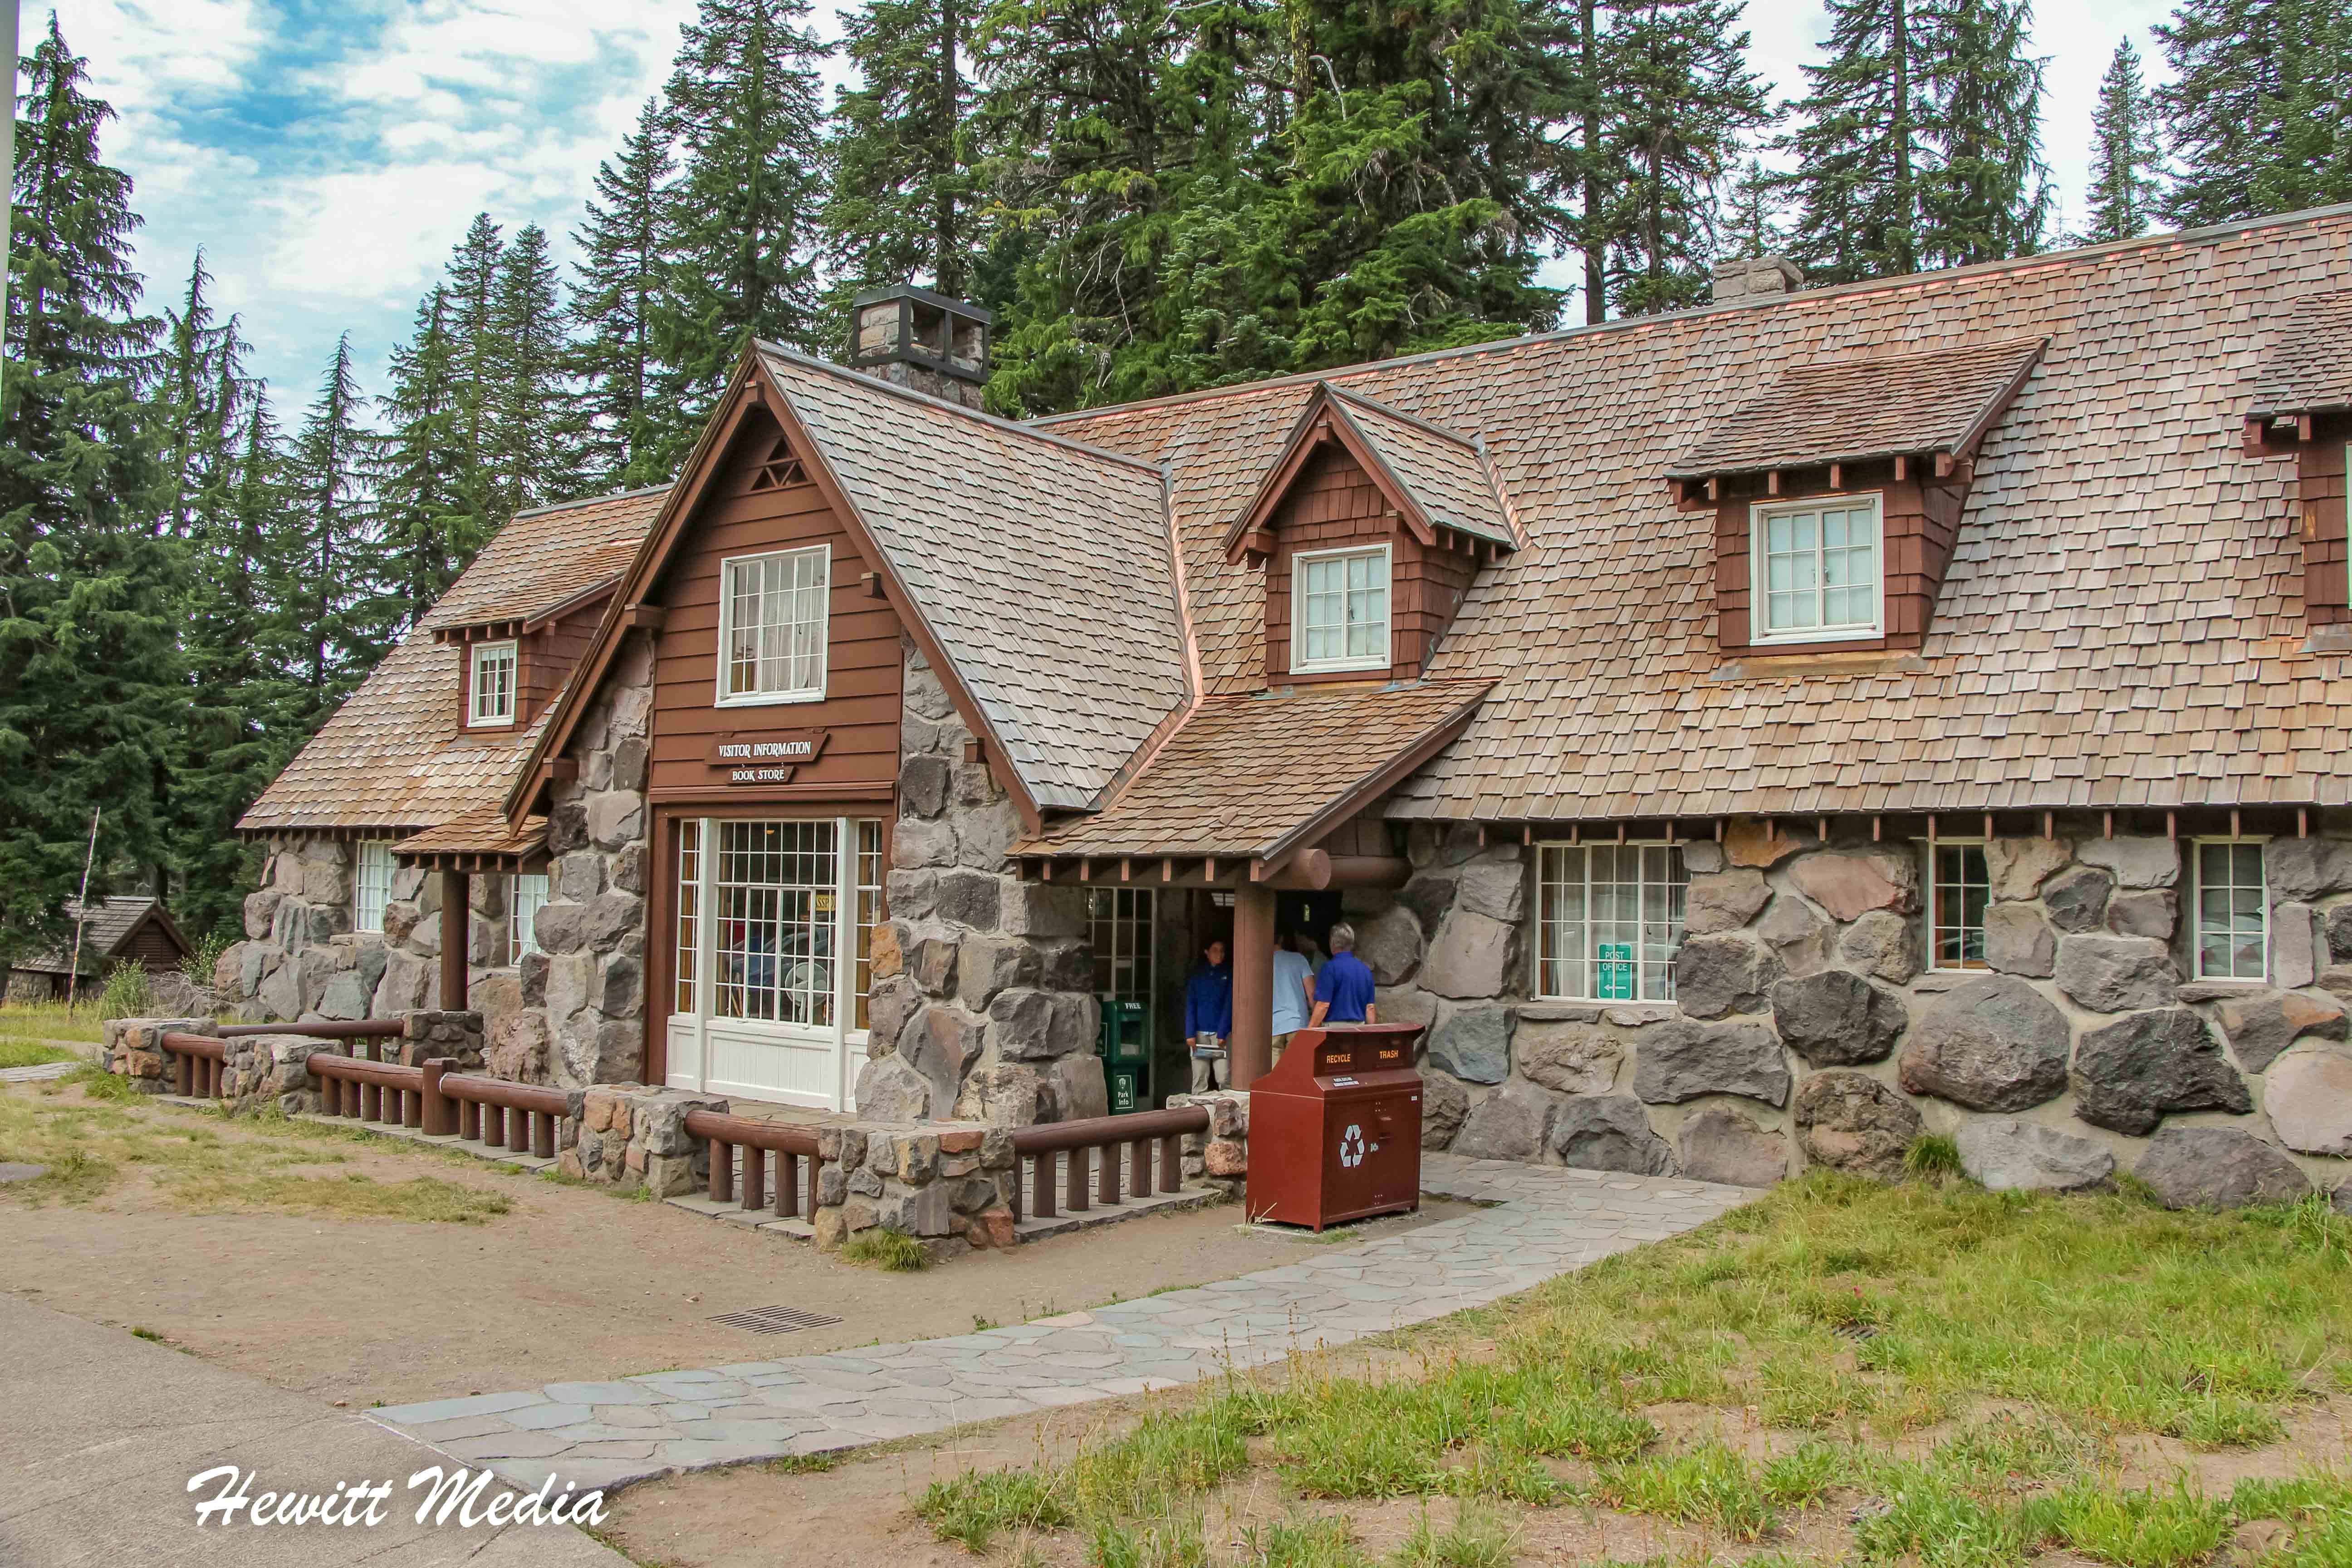 The visitor center in Crater Lake National Park